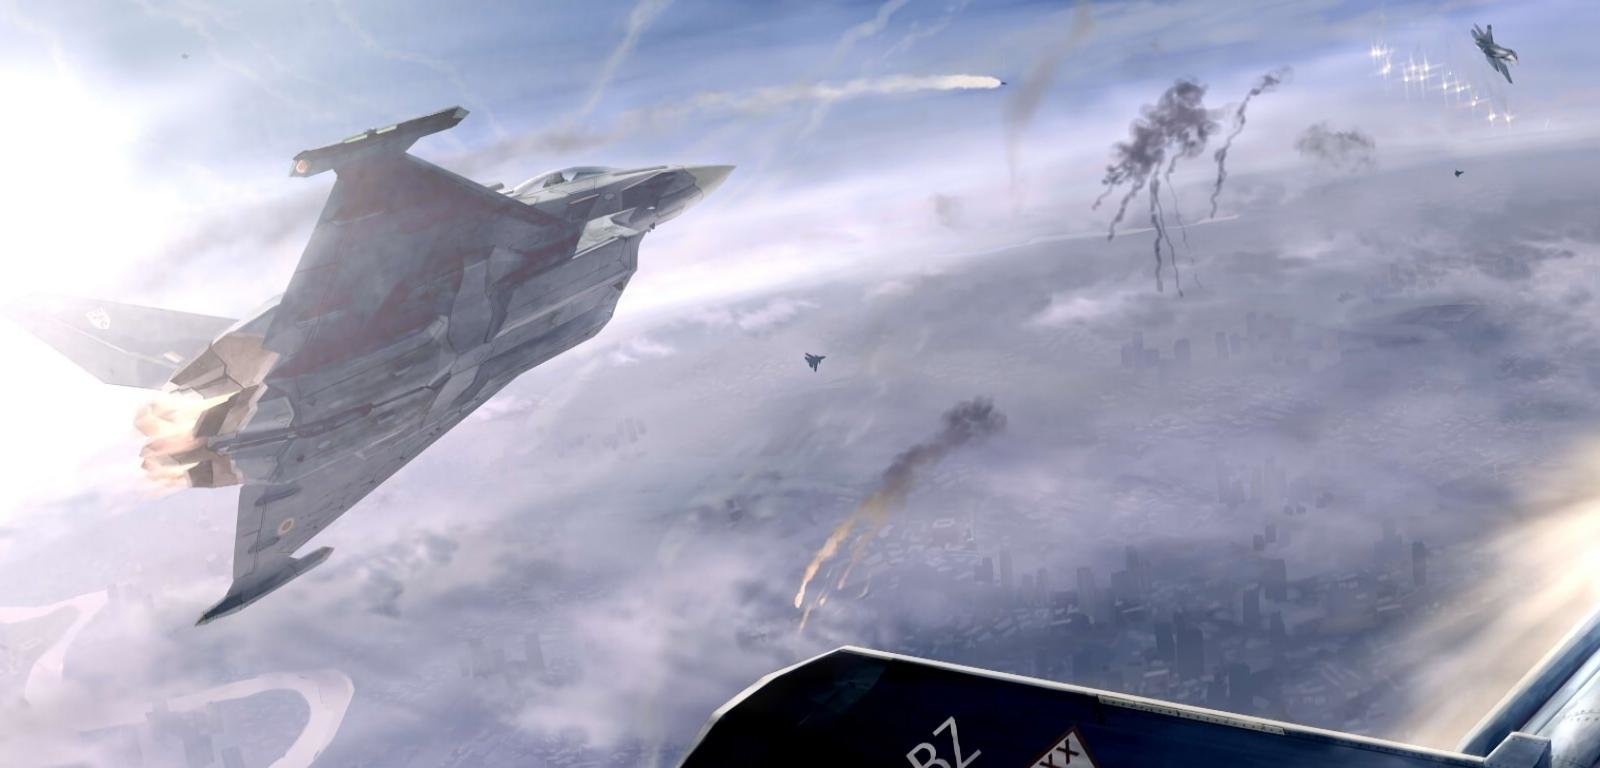 Ace Combat Wallpapers Hd For Desktop Backgrounds